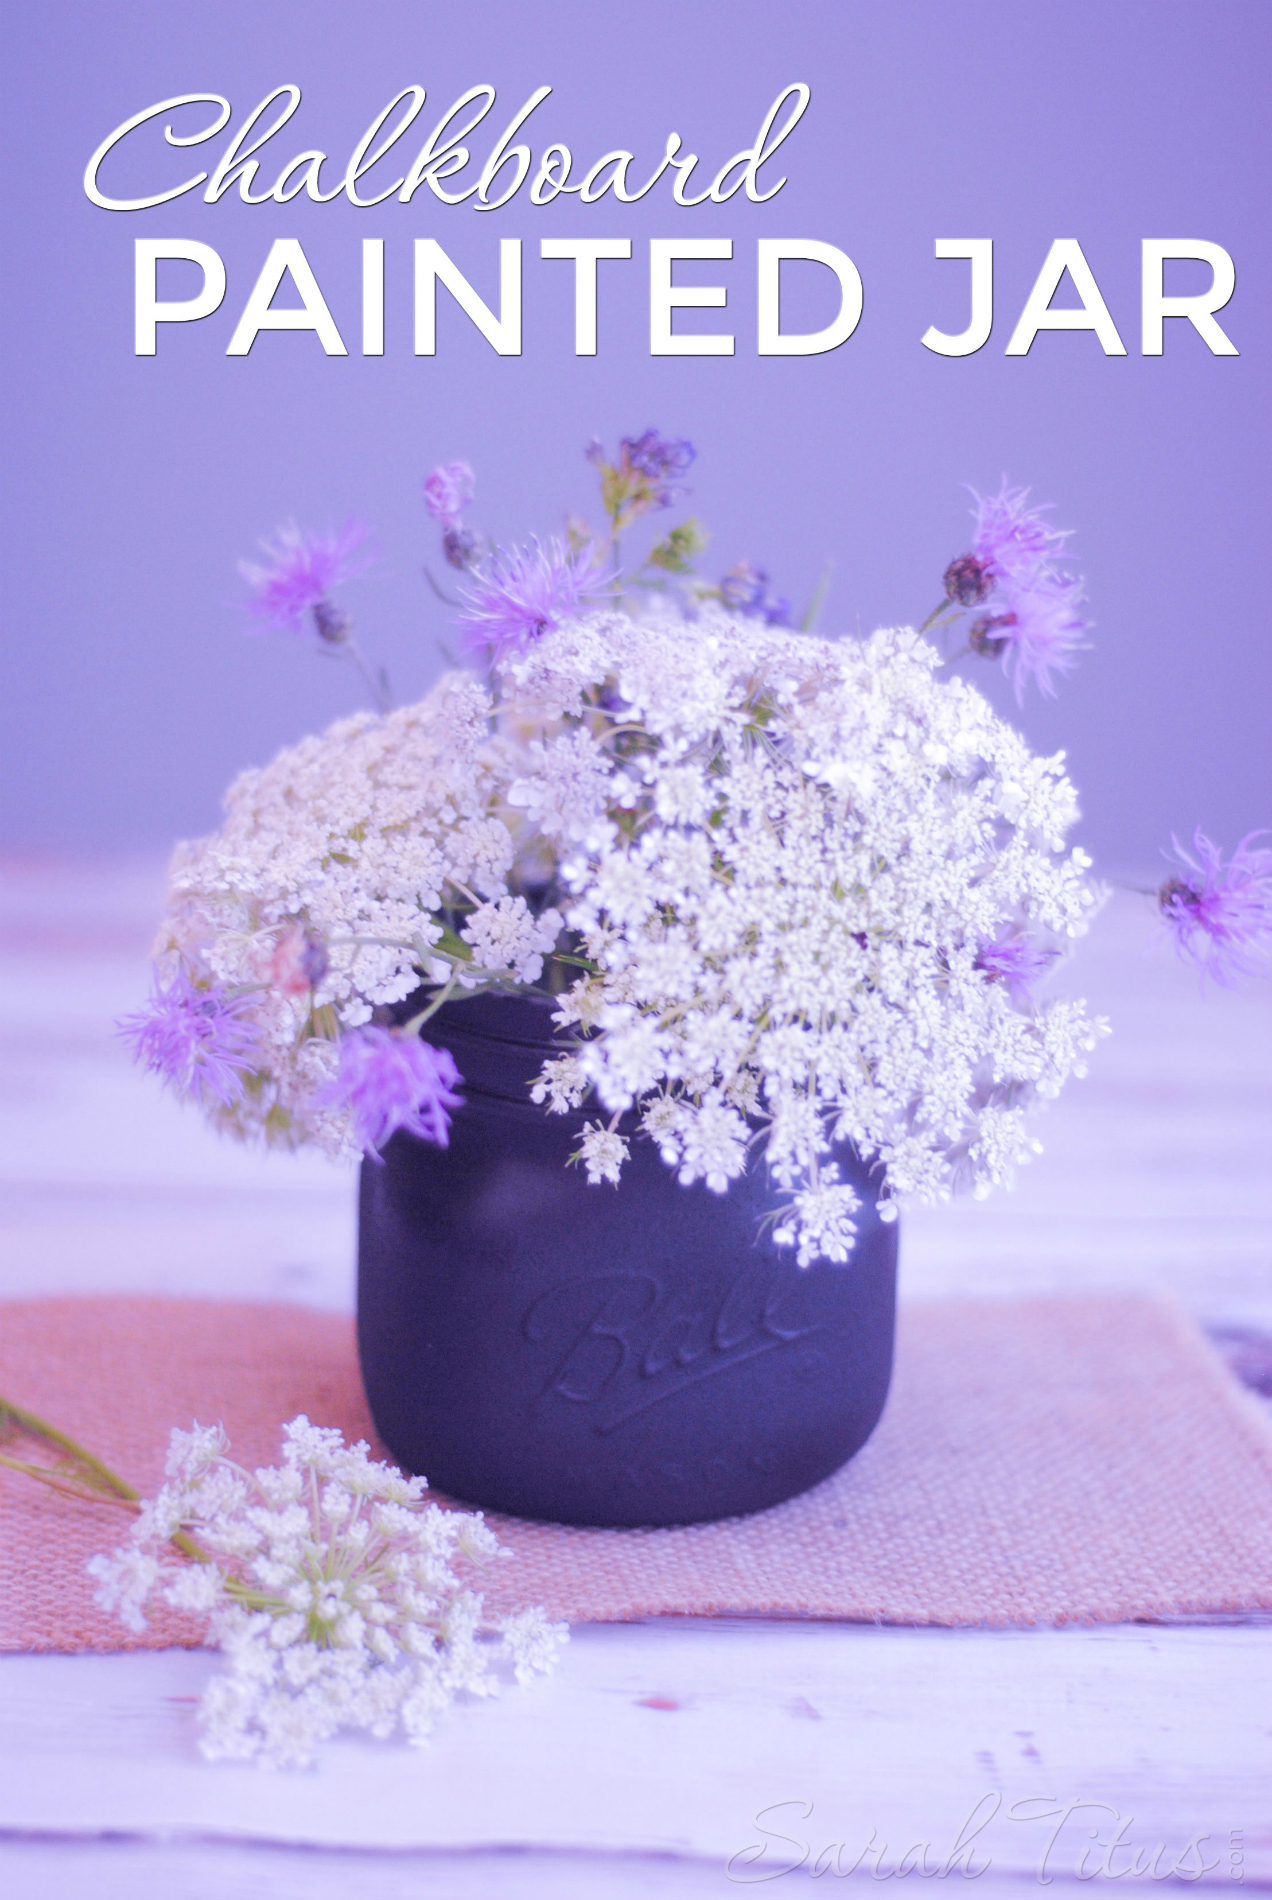 This chalkboard painted jar is an incredibly easy project that would make the perfect centerpiece decoration! Keep for yourself or give as a gift and write your message in chalk!